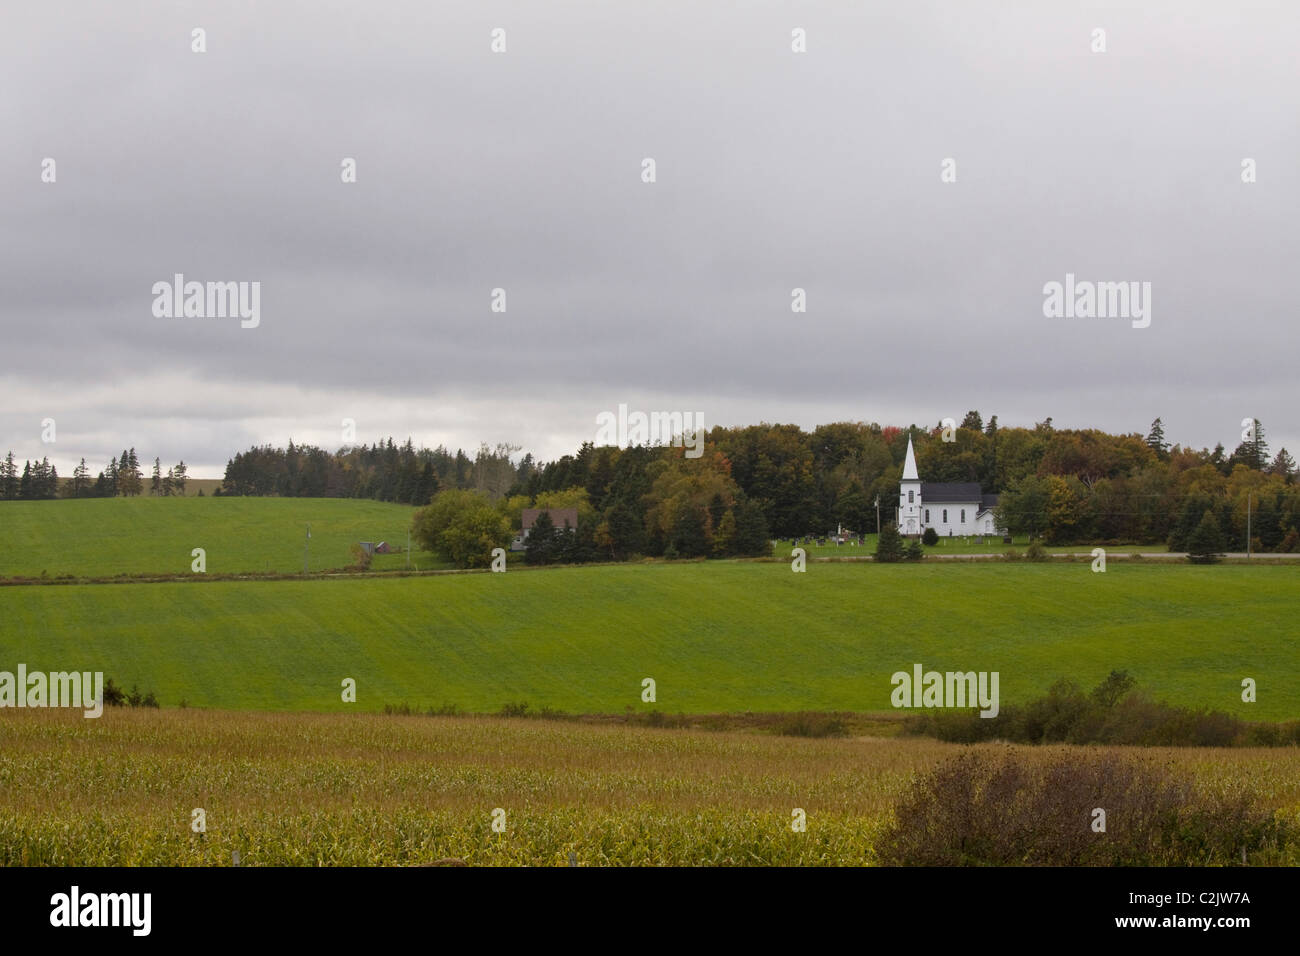 PEI rural scene, with cornfield and white church in the background, Queens County, Prince Edward Island, Canada - Stock Image